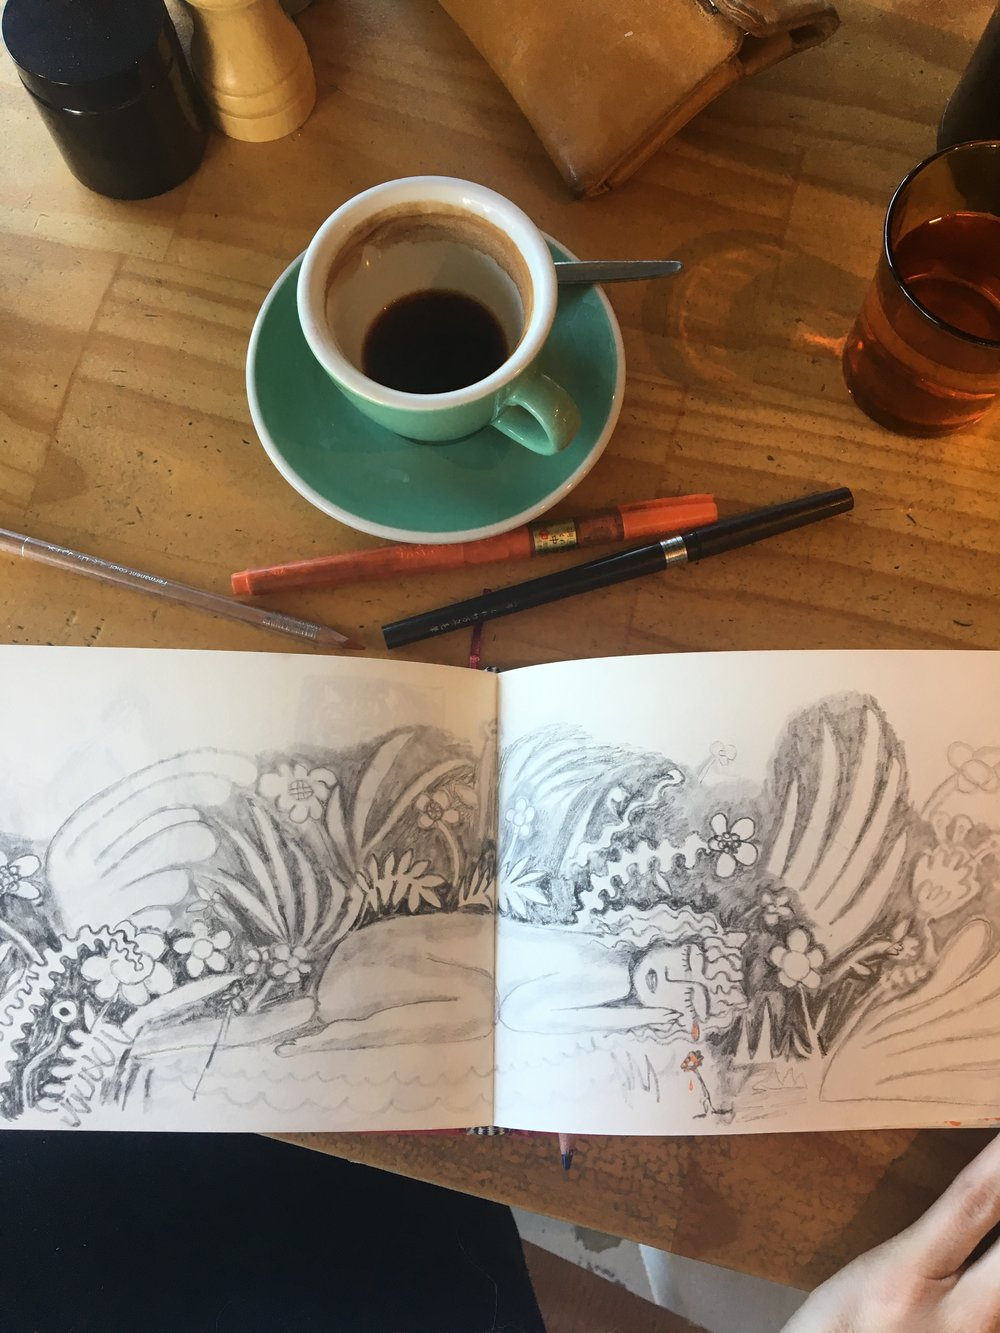 Sketchbook process, coffee and messy pens.